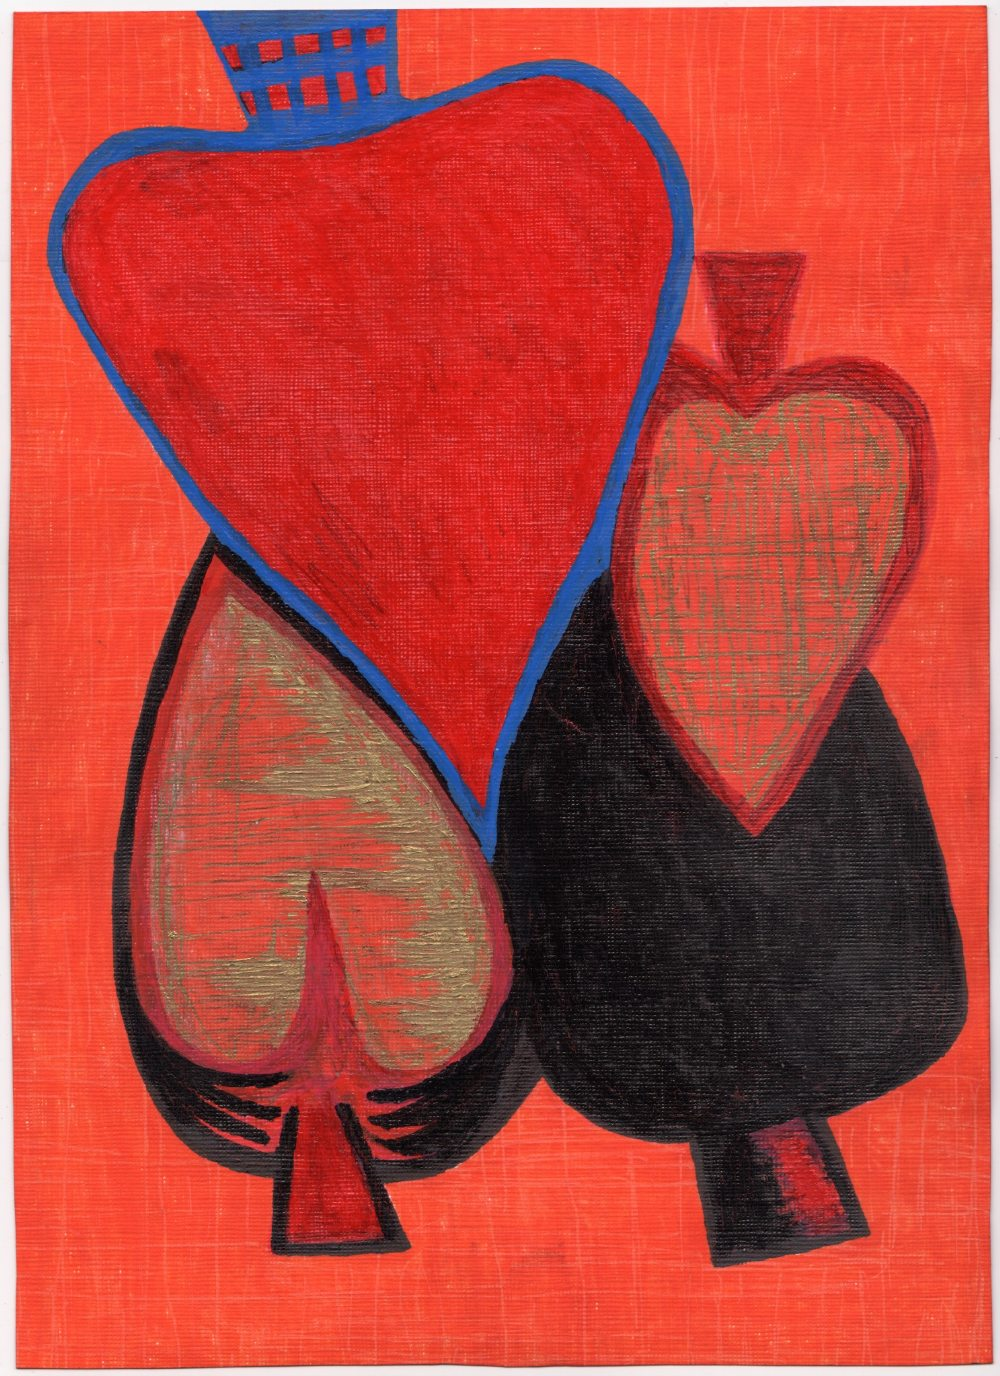 Steven Ling (British, b.1966). '4 of Spades'. Acrylic and felt tip pen on paper, signed, titled